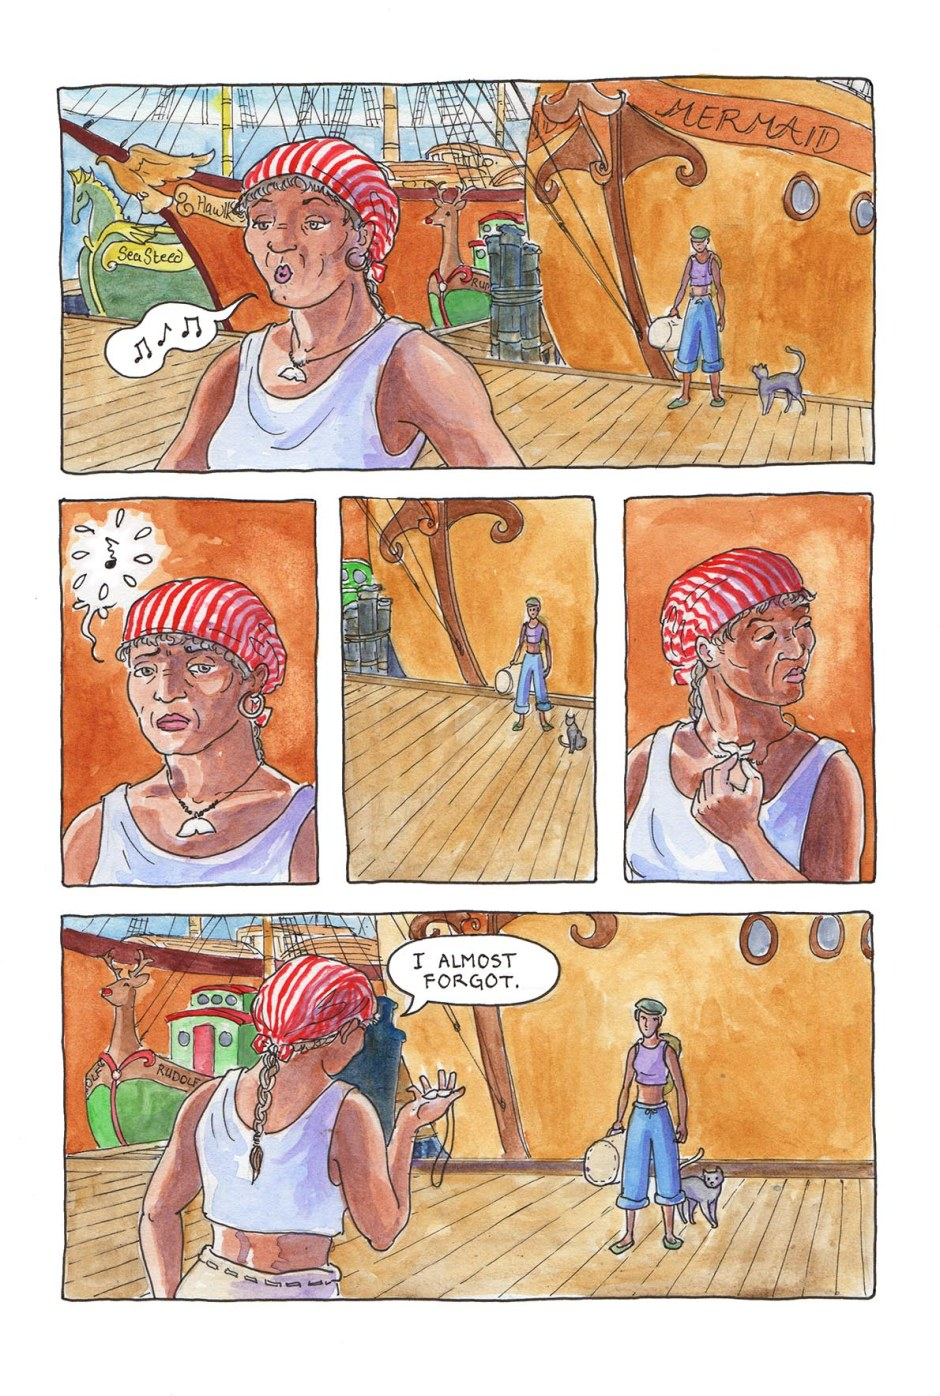 Page 25 — A sudden decision